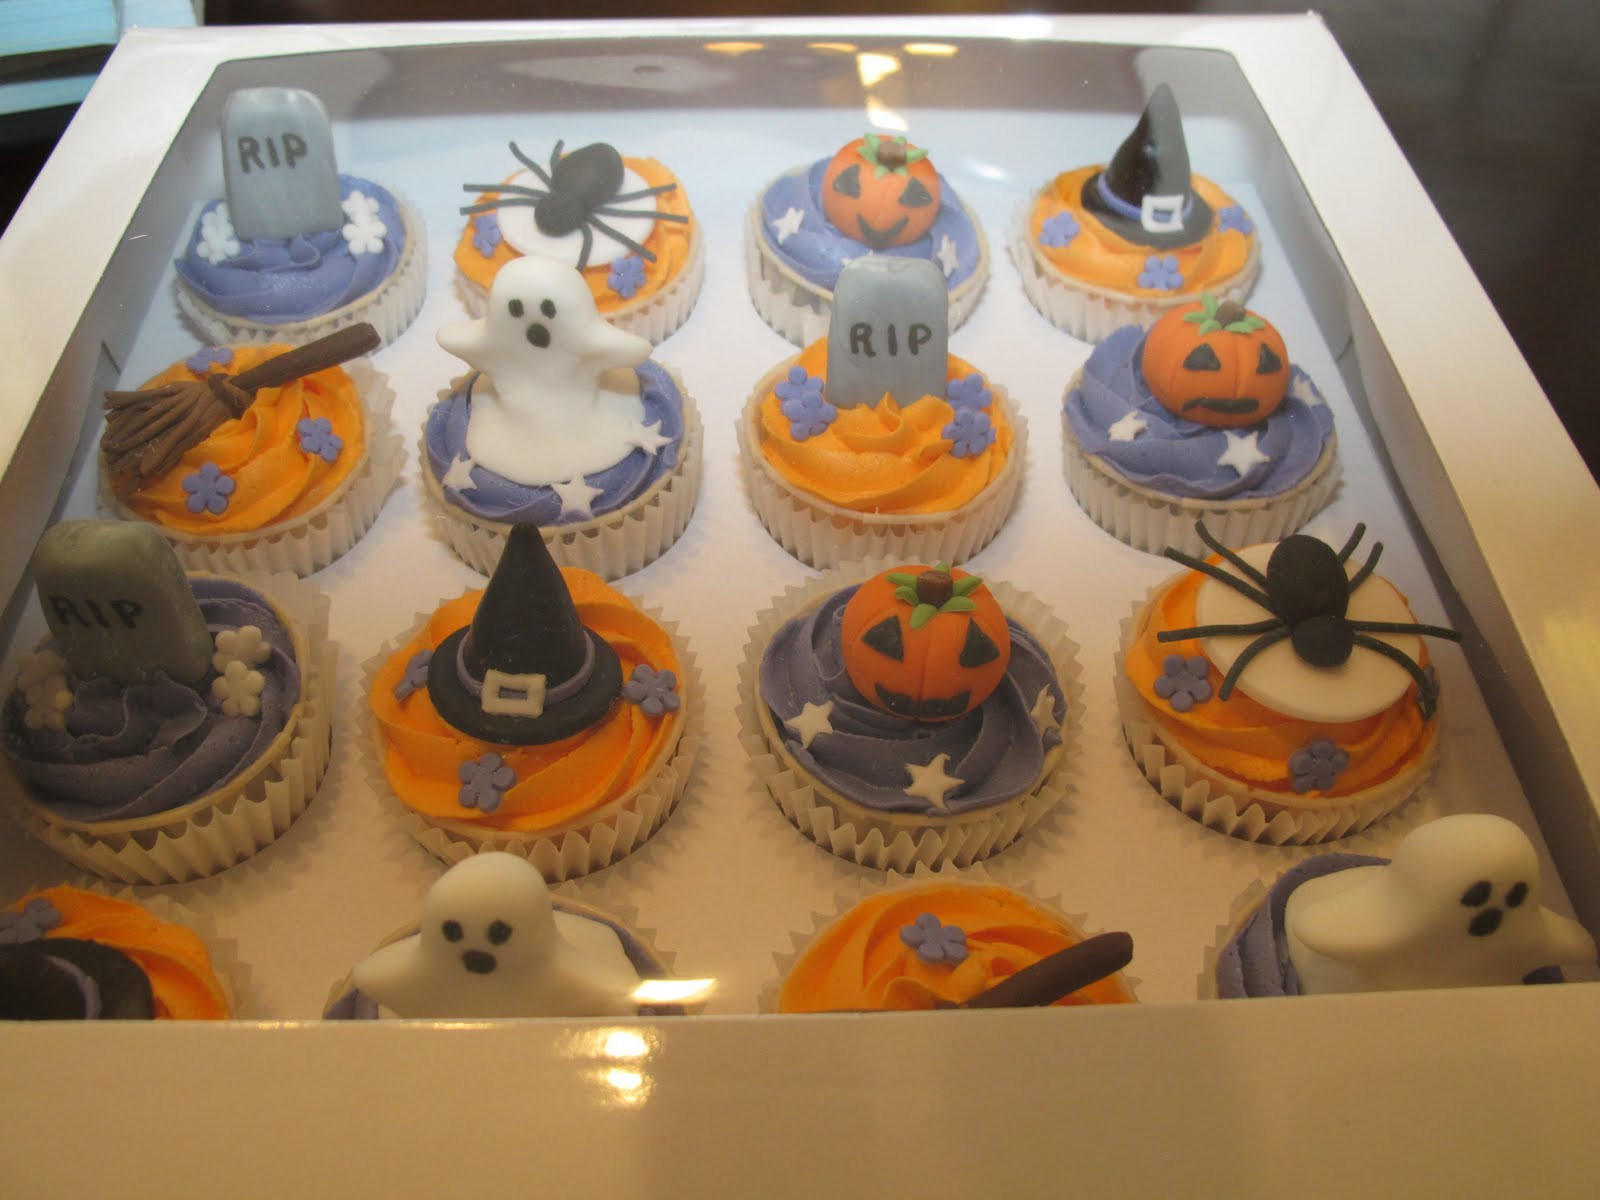 Halloween Cakes Ideas  Pink Oven Cakes and Cookies Halloween cupcake ideas